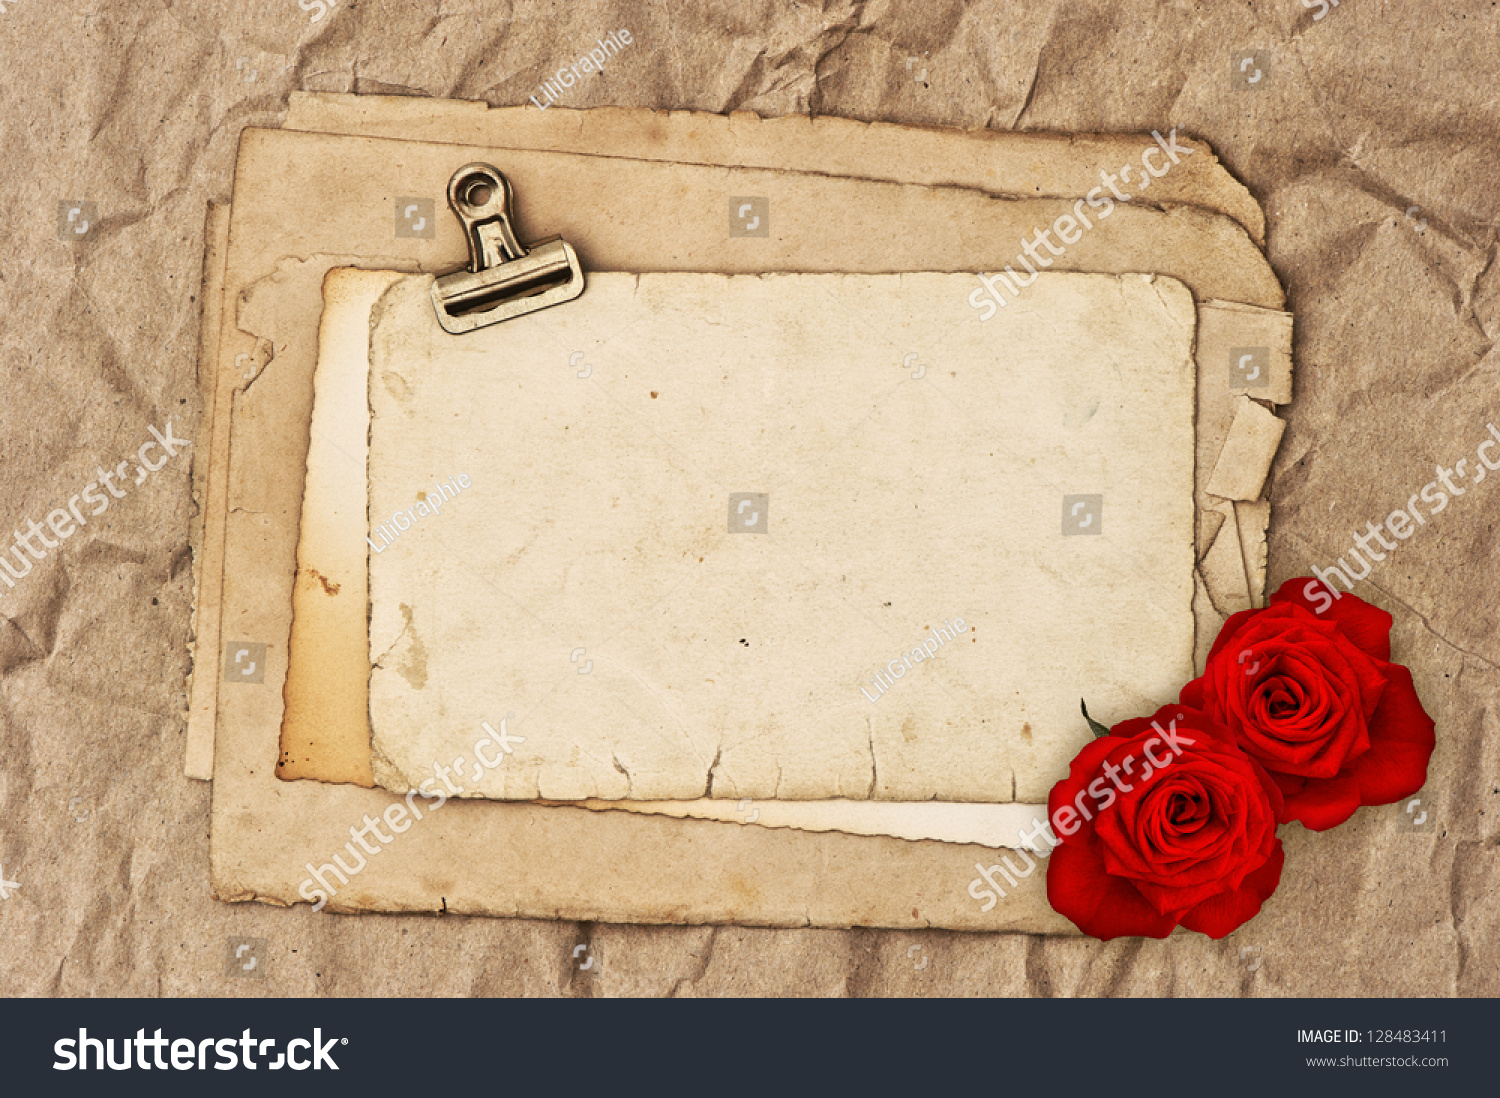 Old Blank Paper Two Rose Flowers Photo 128483411 Shutterstock – Blank Paper Background